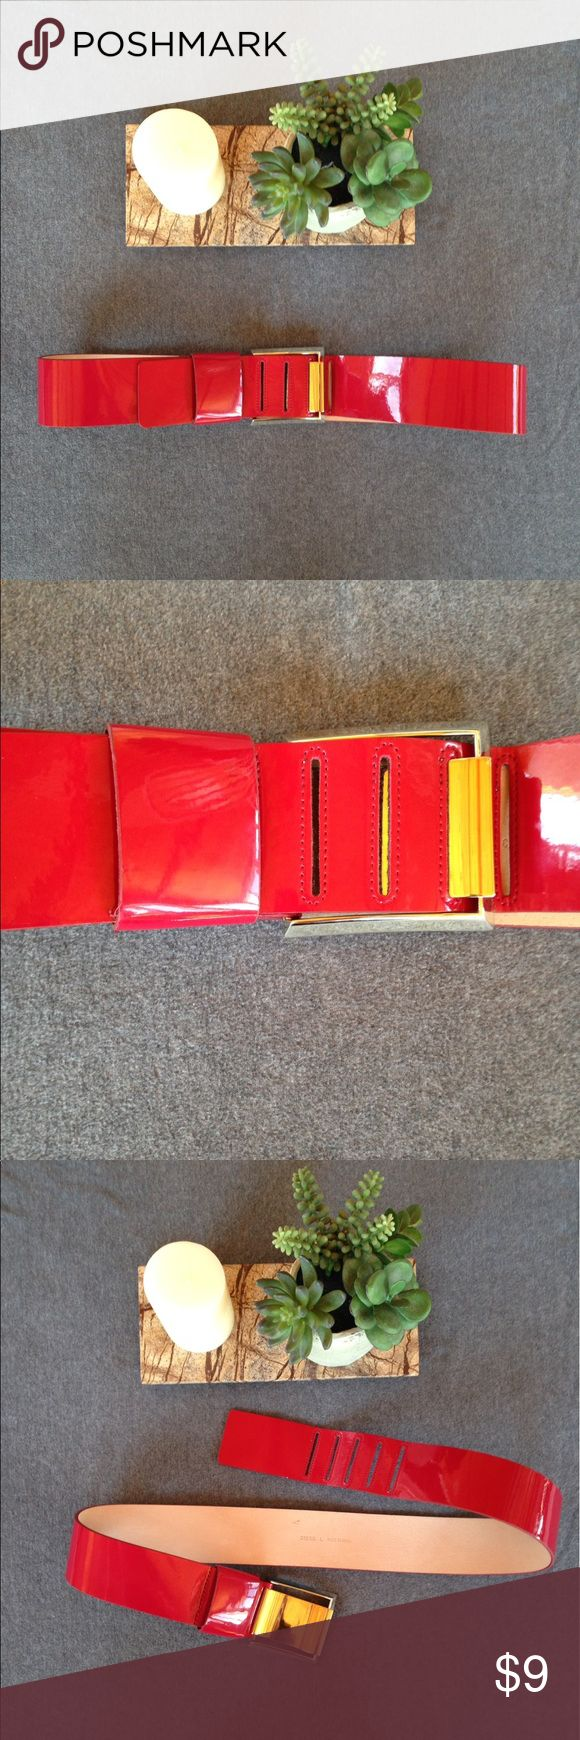 Sassy Red Belt Stylish red belt with silver buckle. The red is a bit darker than it shows up in the pictures. Belt is 46 inches long (not including buckle). Used but in good condition. Accessories Belts